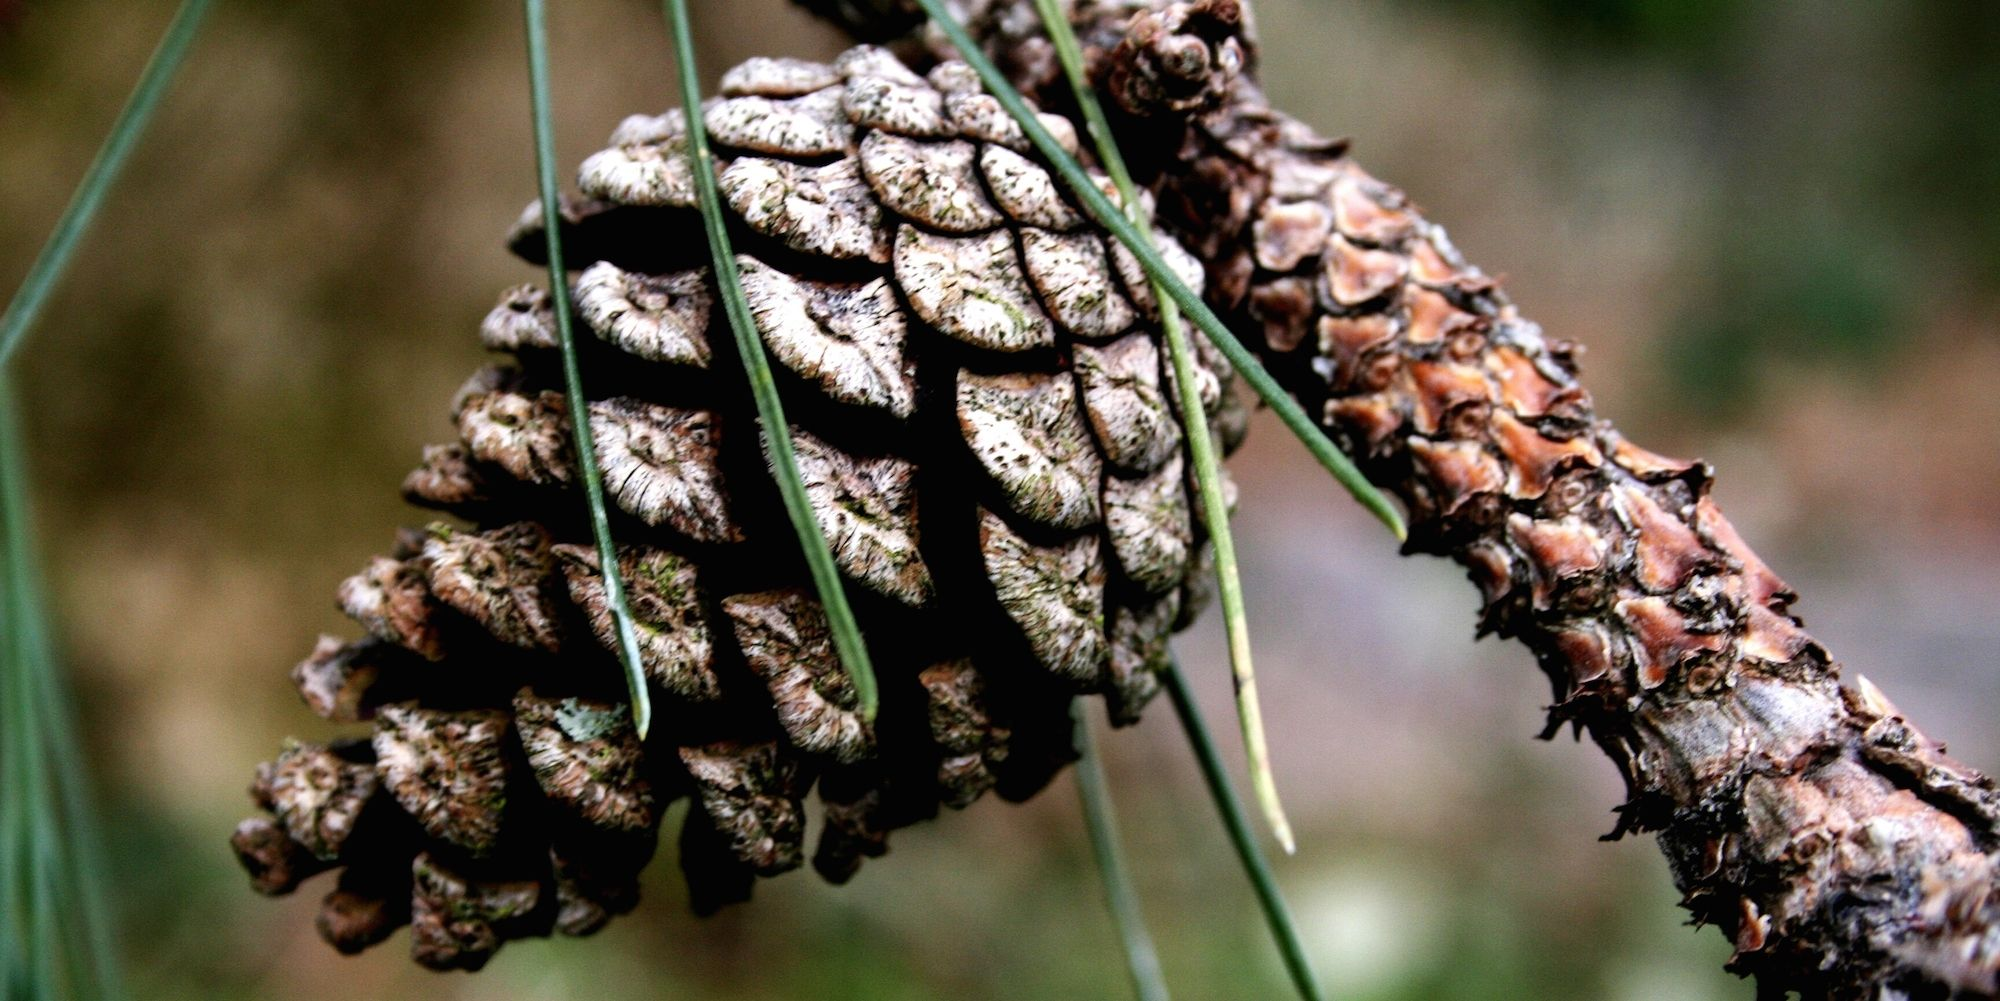 New Nature Thing to Be Afraid of: 16-Pound Pine Cones